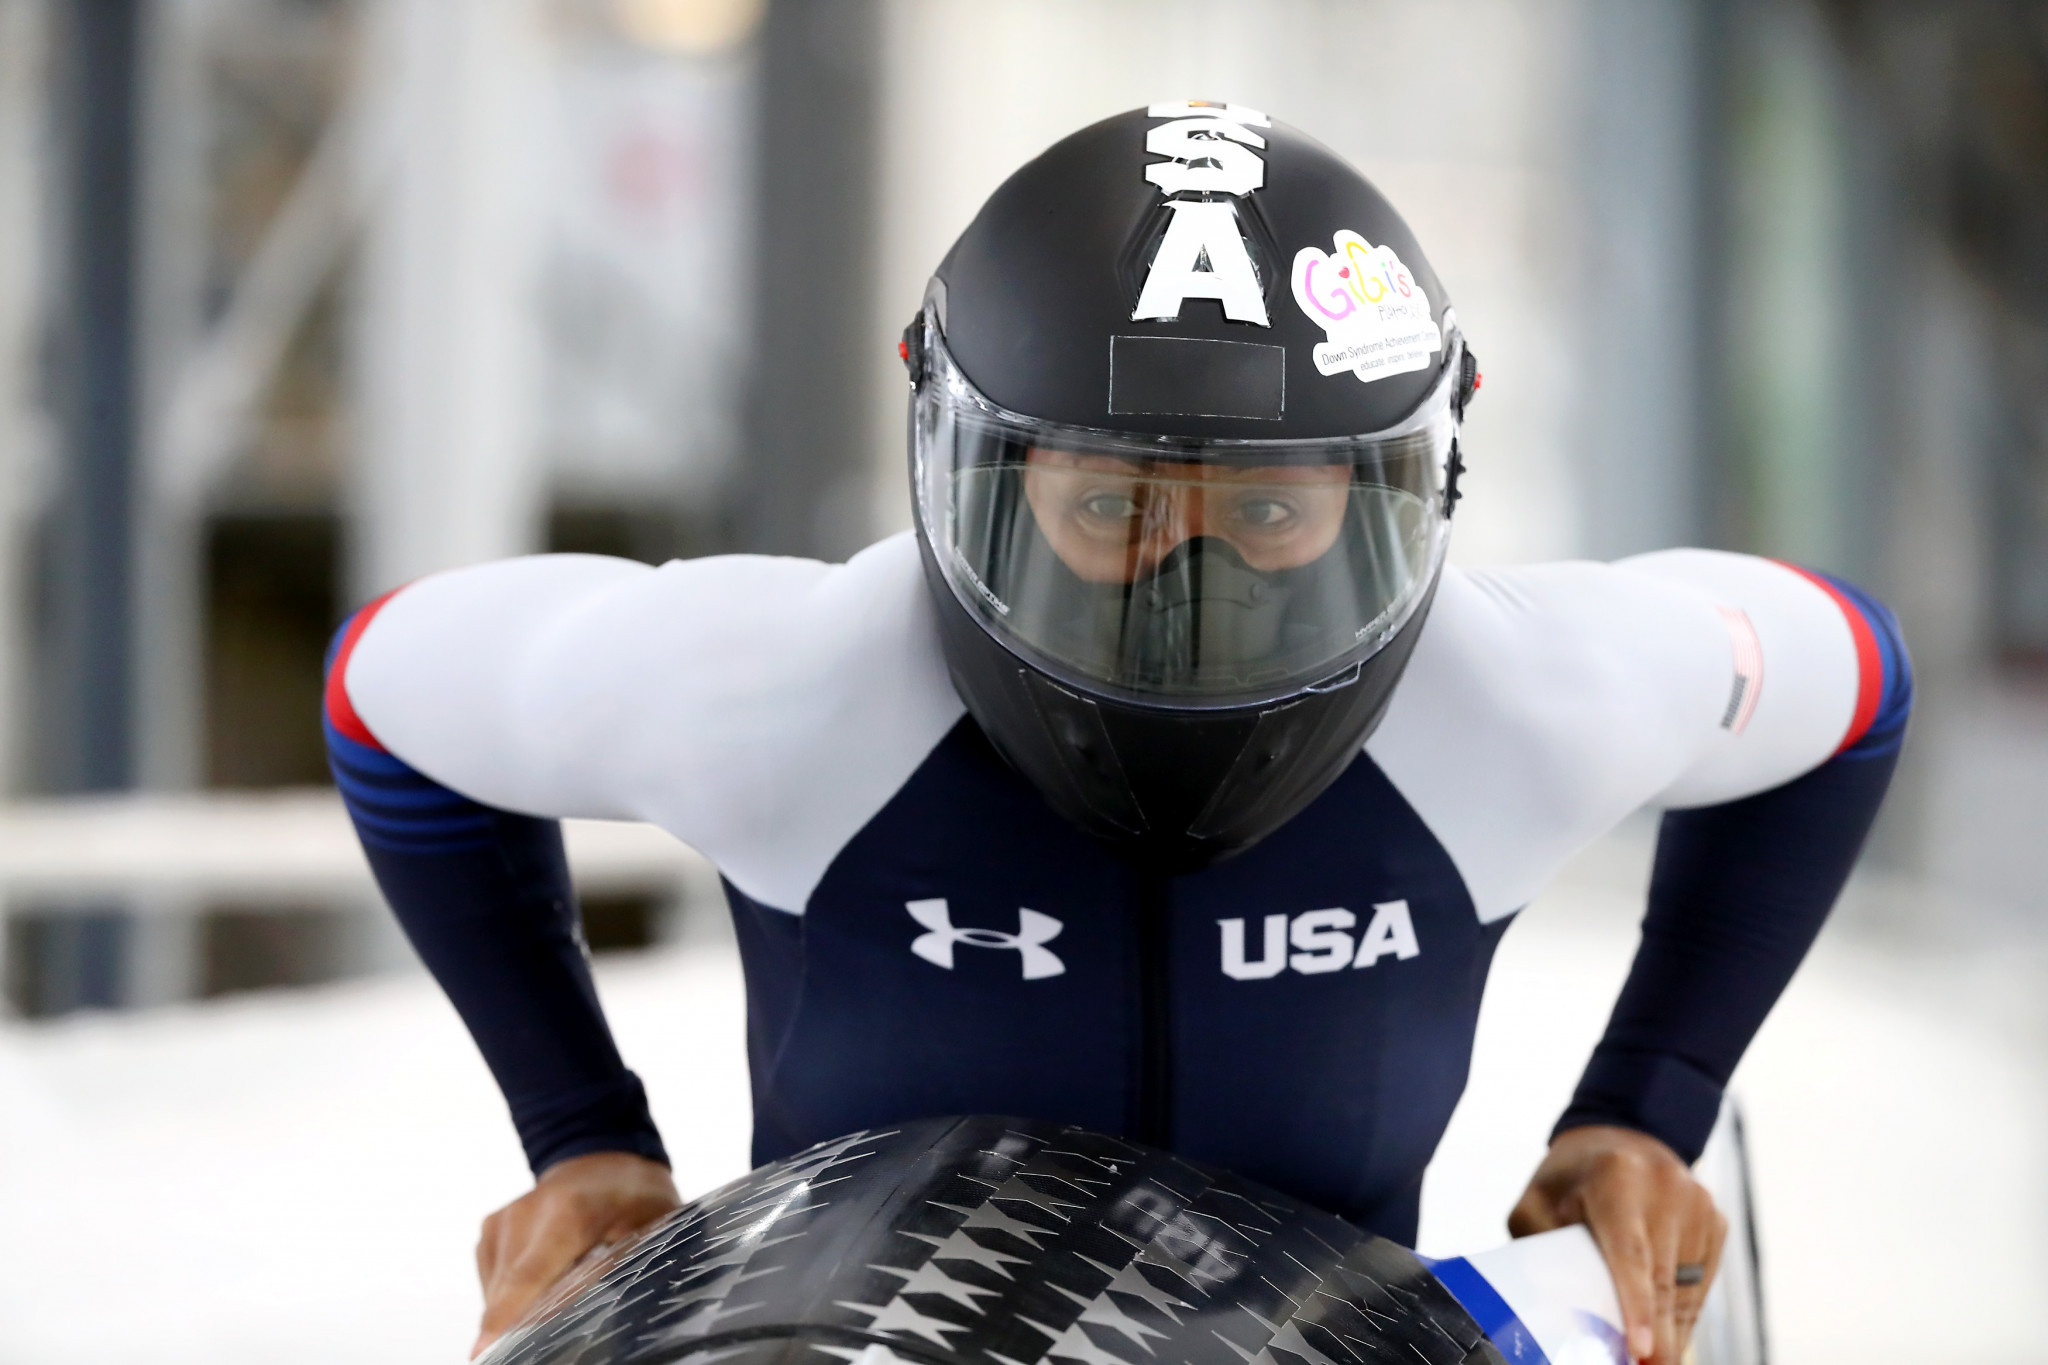 Three-times Olympic medallist Elana Meyers Taylor is also included as a pilot in the women's bobsleigh team ©Getty Images